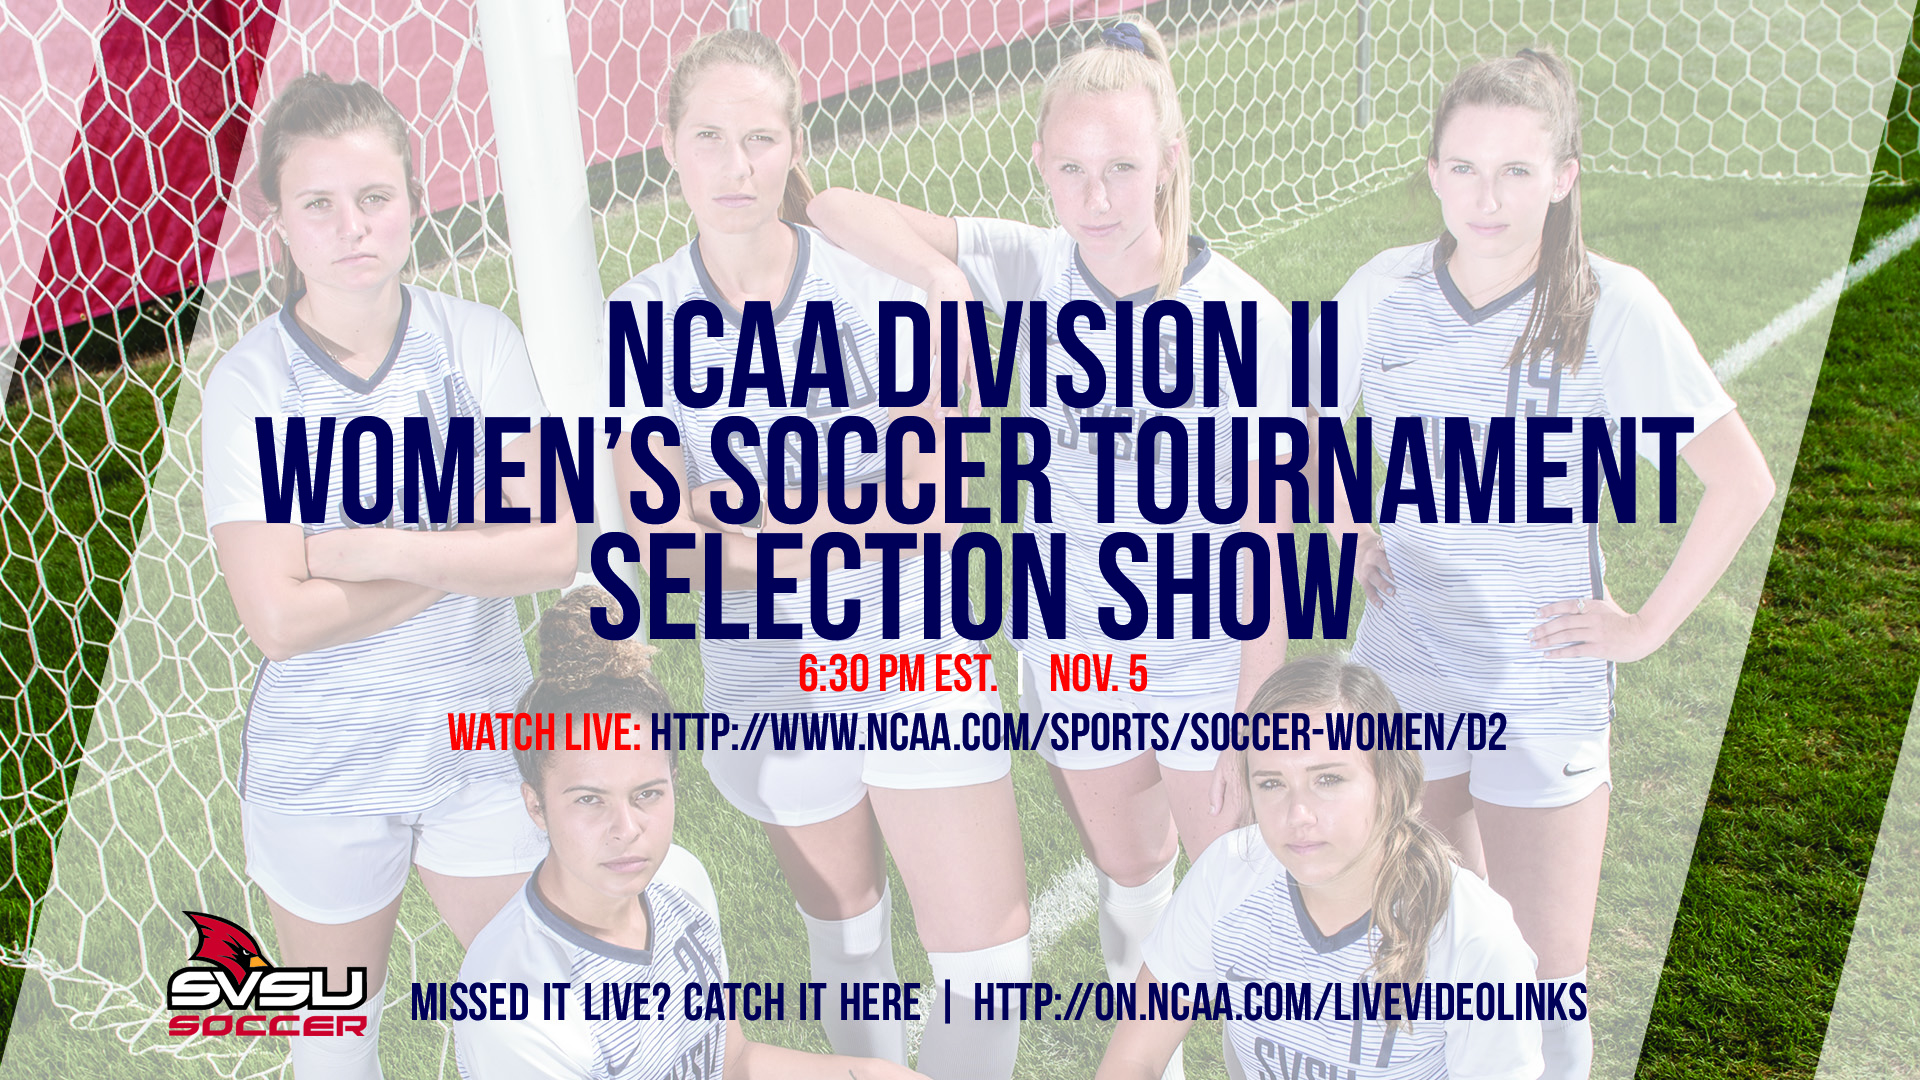 Women's Soccer NCAA Selection Show Set for 6:30 P.M. on Monday